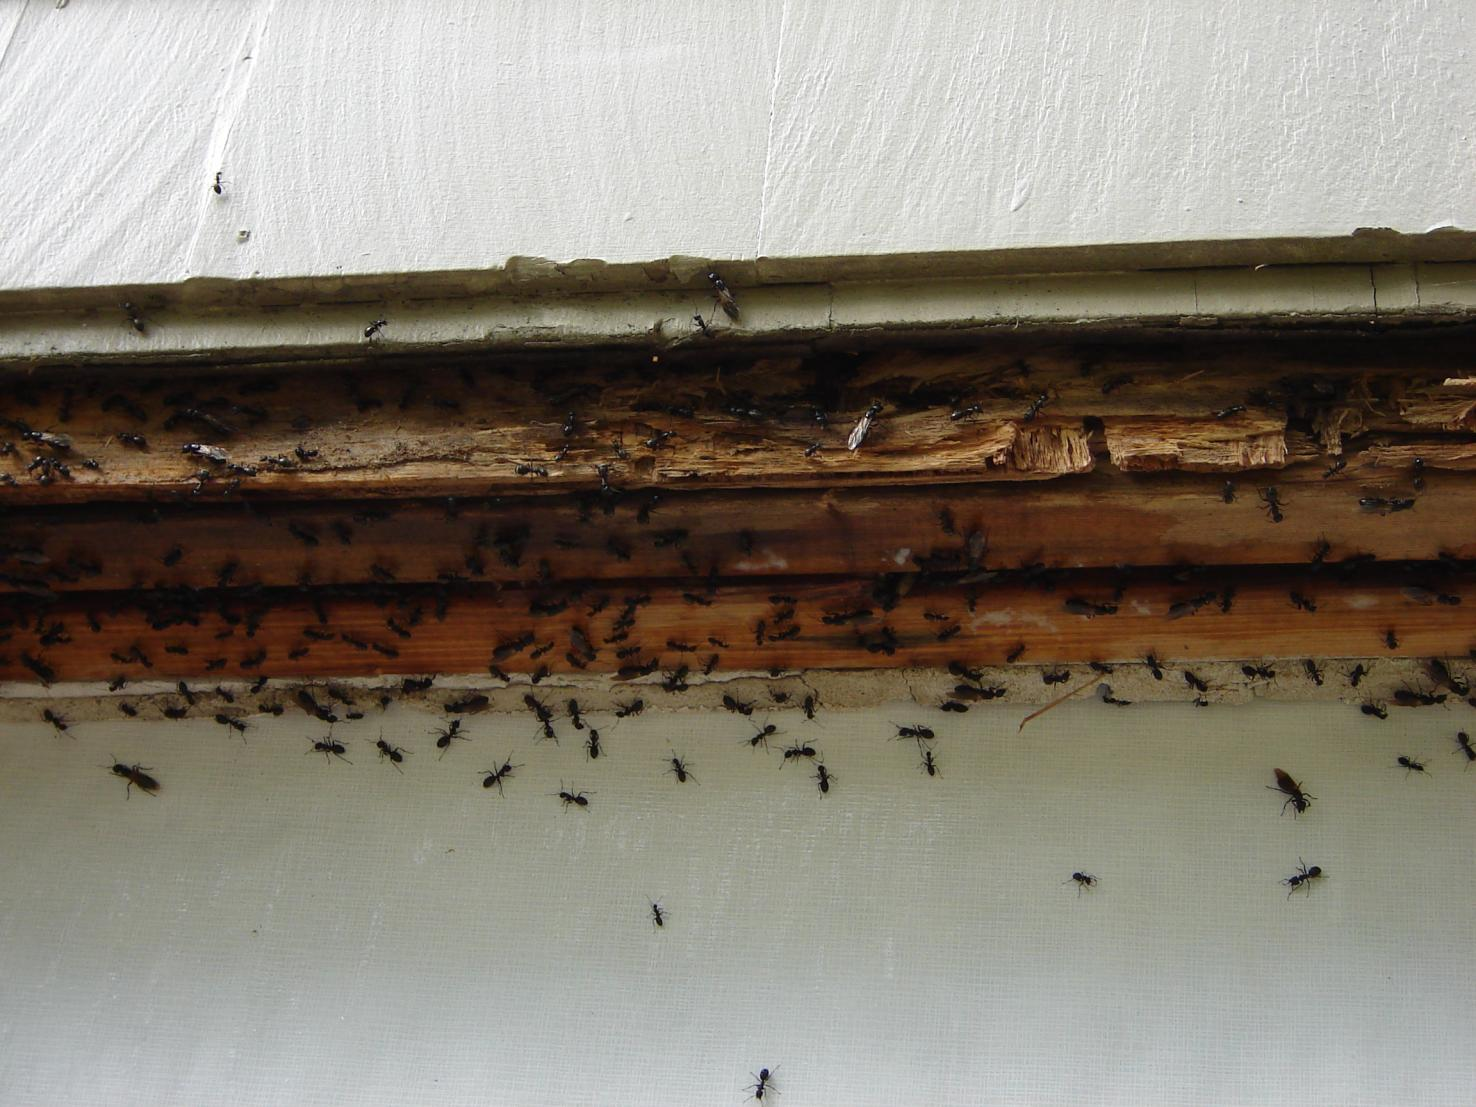 Termites in the trading system bhagwati